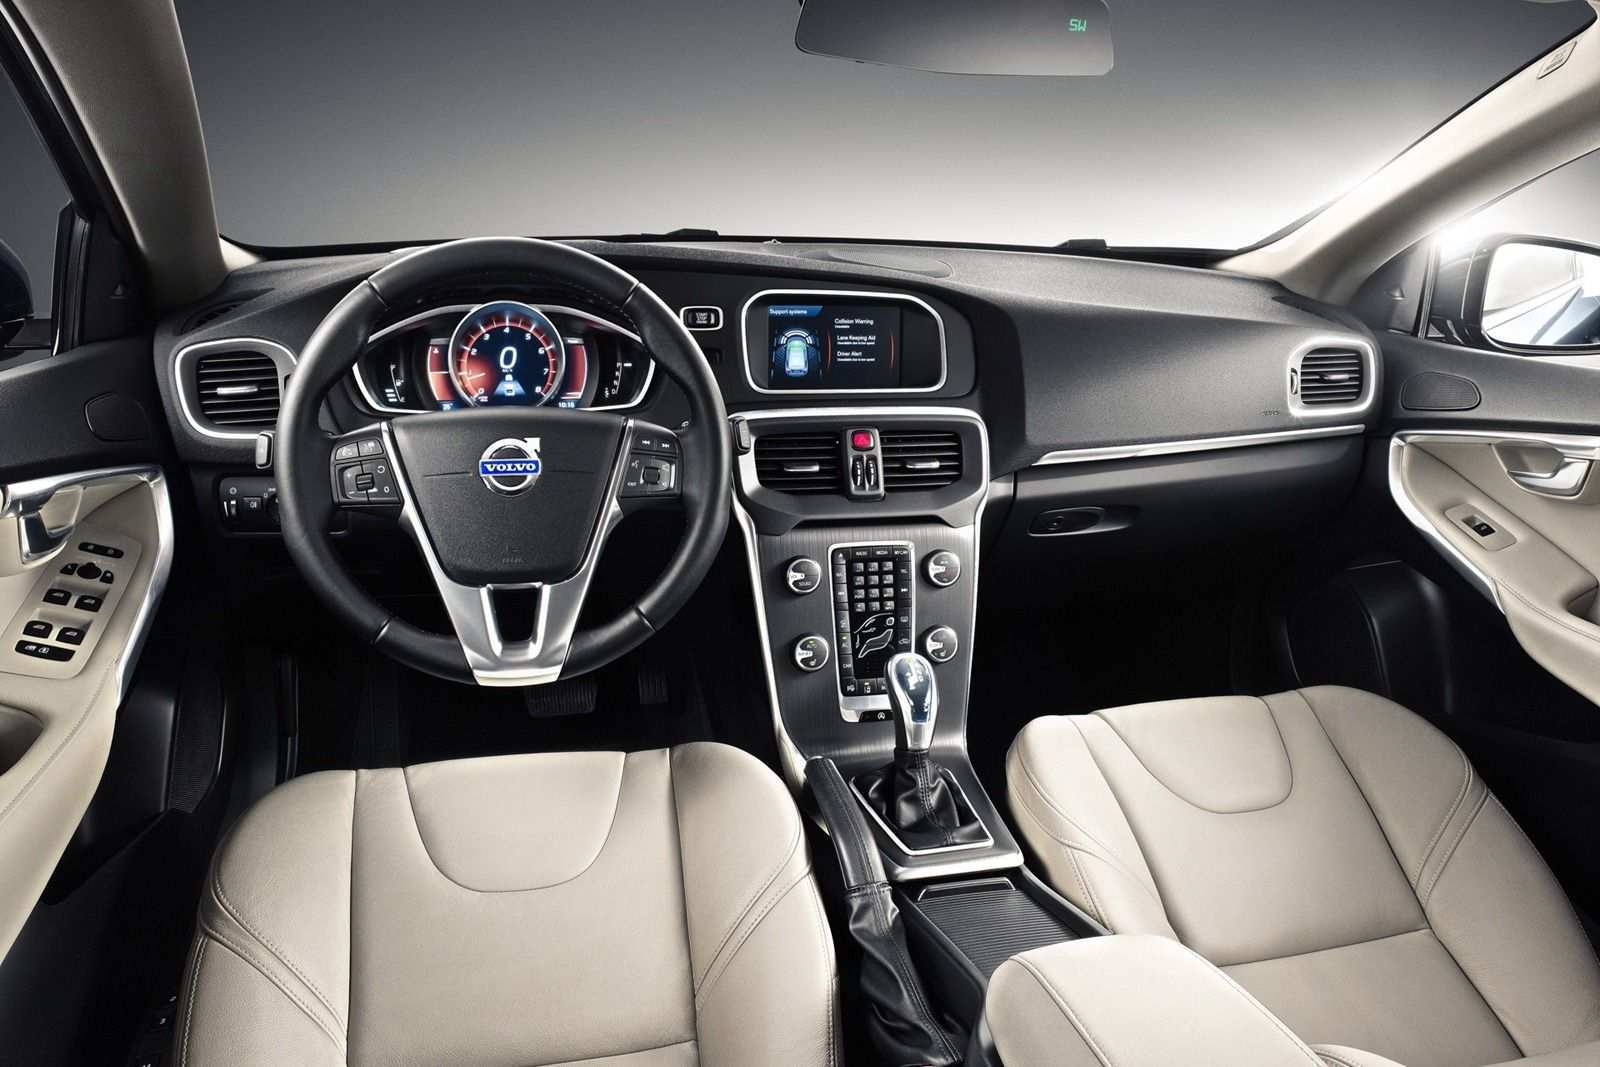 14 All New Volvo V40 2019 Interior Concept And Review